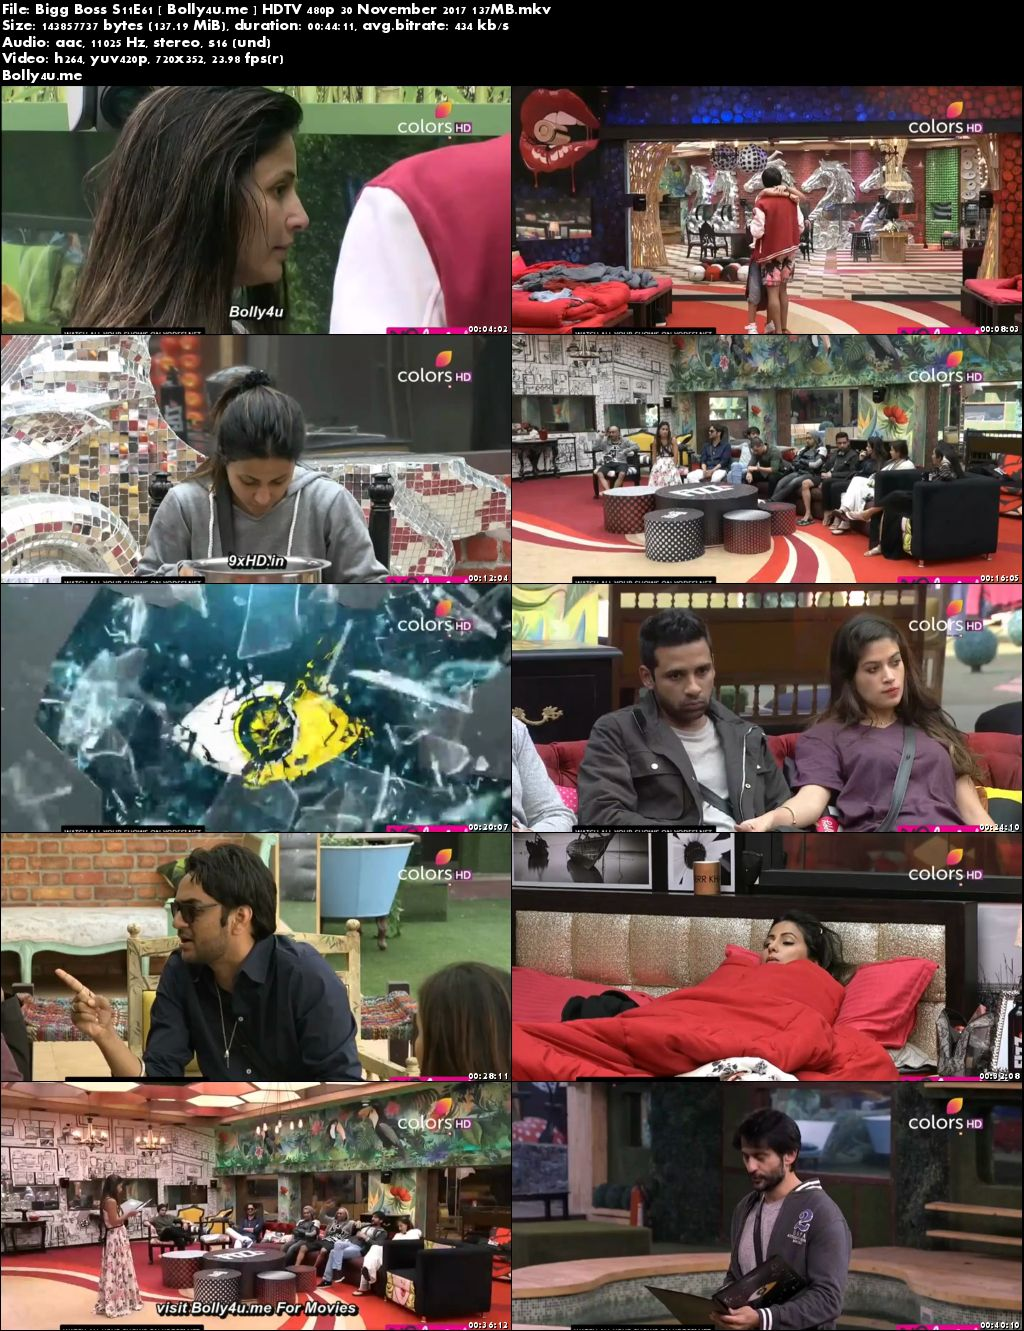 Bigg Boss S11E61 HDTV 140MB 480p 30 November 2017 Download